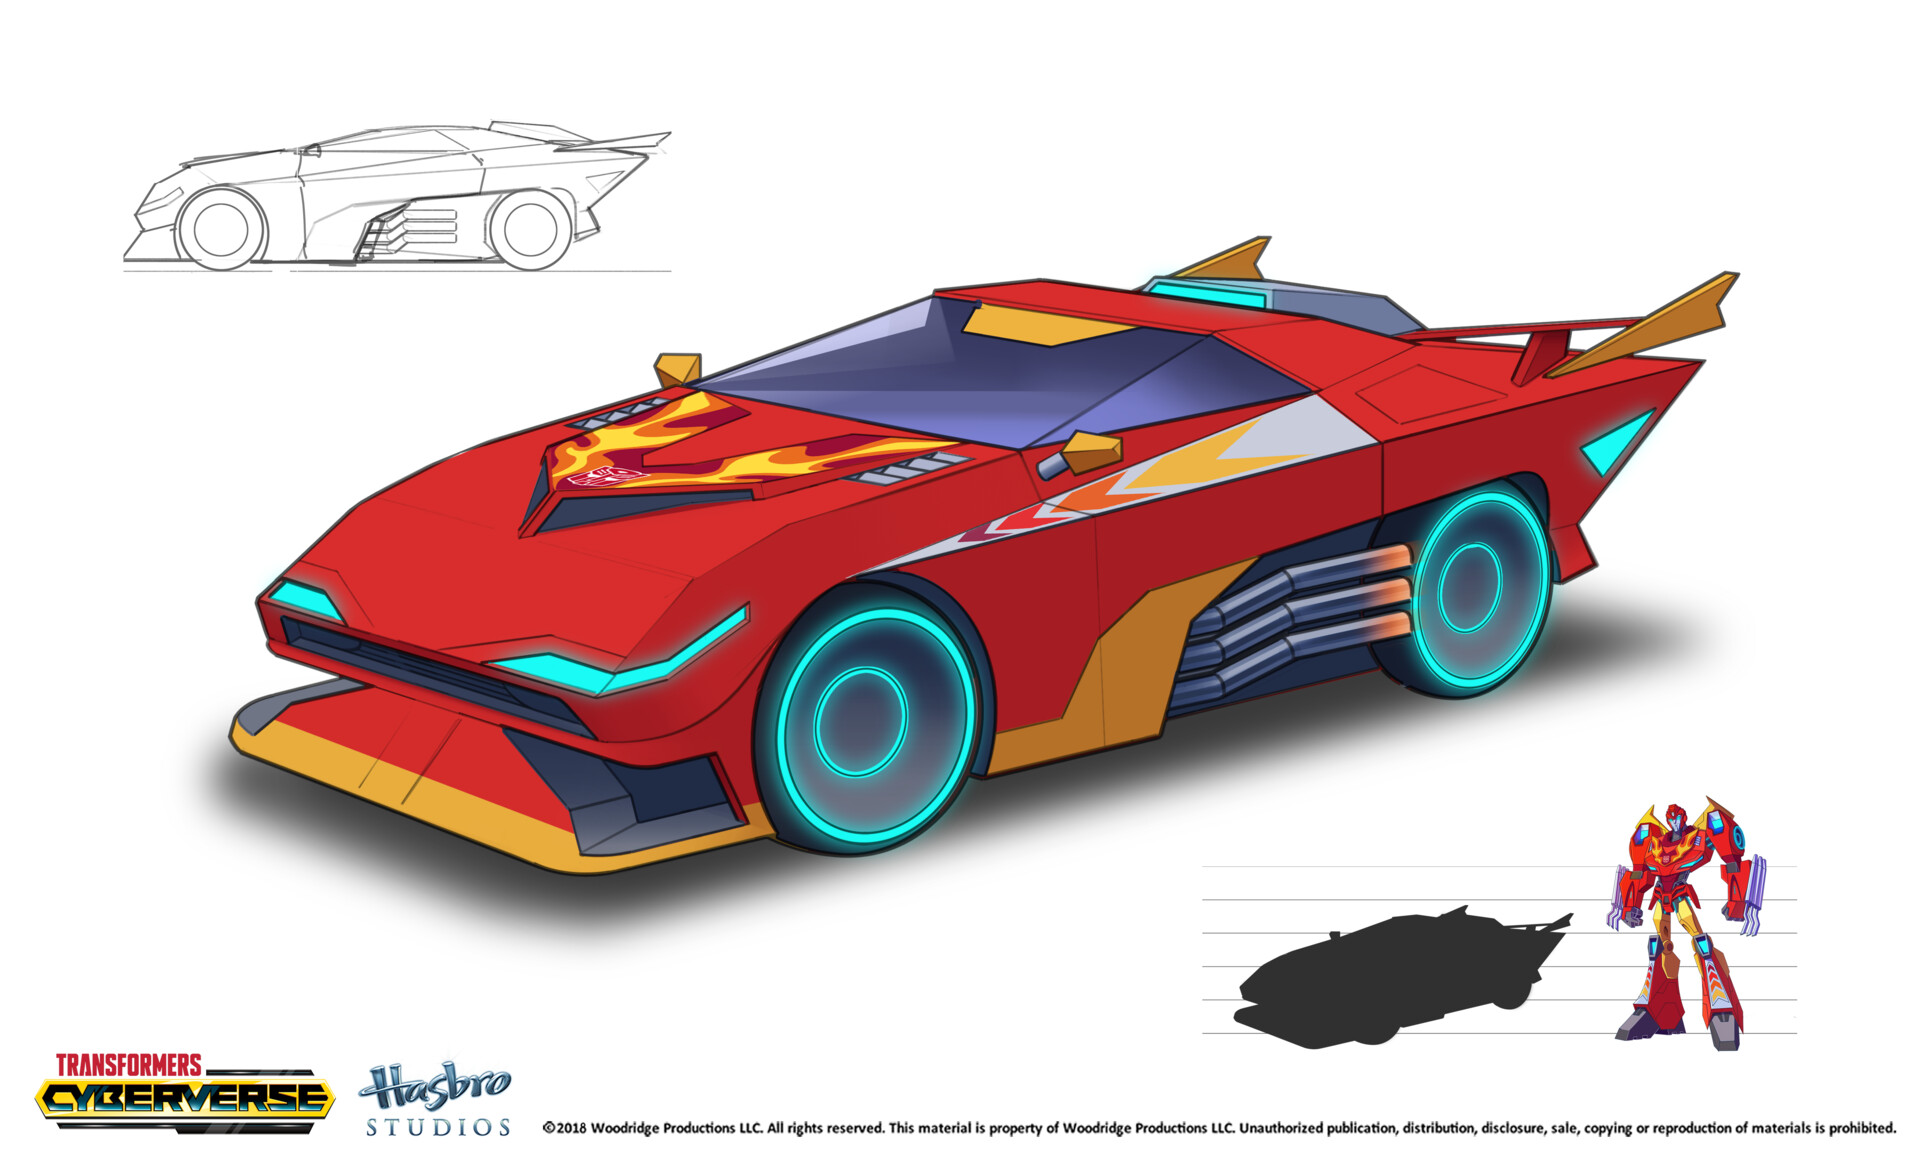 Transformers Cyberverse Props Vehicles Concept Art By Nicolaas Frankefort Cybertron Ca Canadian Transformers News And Discussion